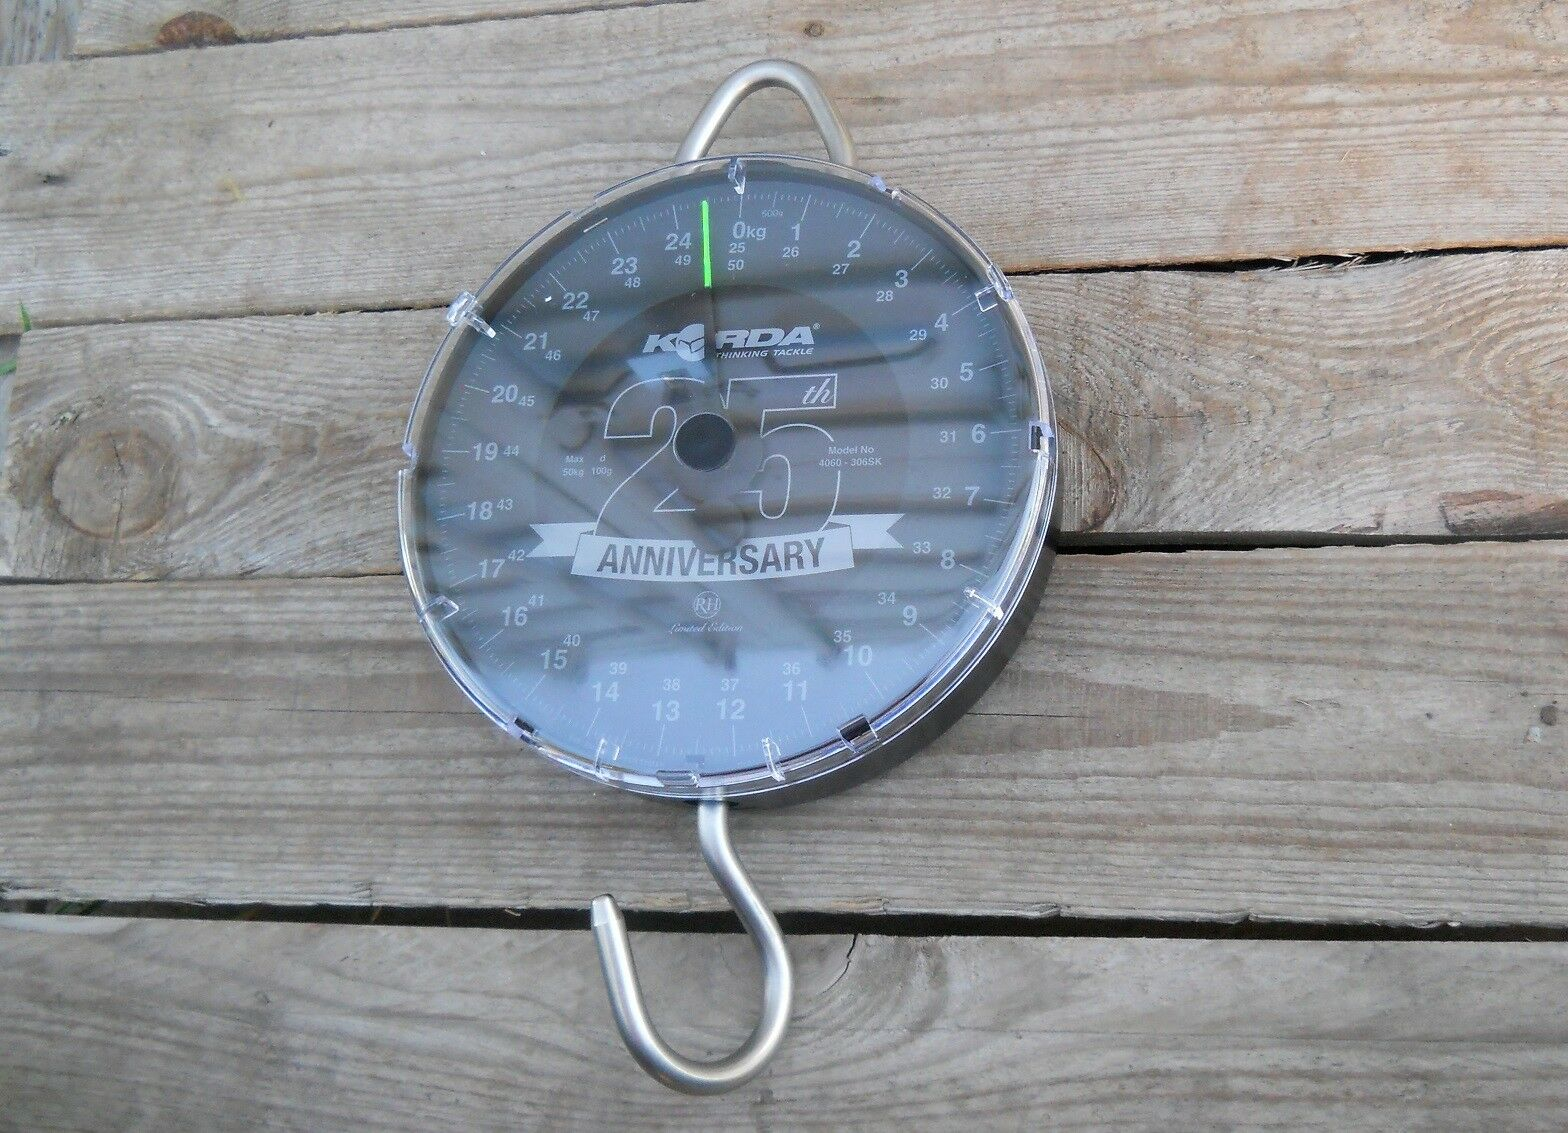 Korda 25th Anniversary Scale by Reuben Heaton Waage Karpfenwaage Angelwaage